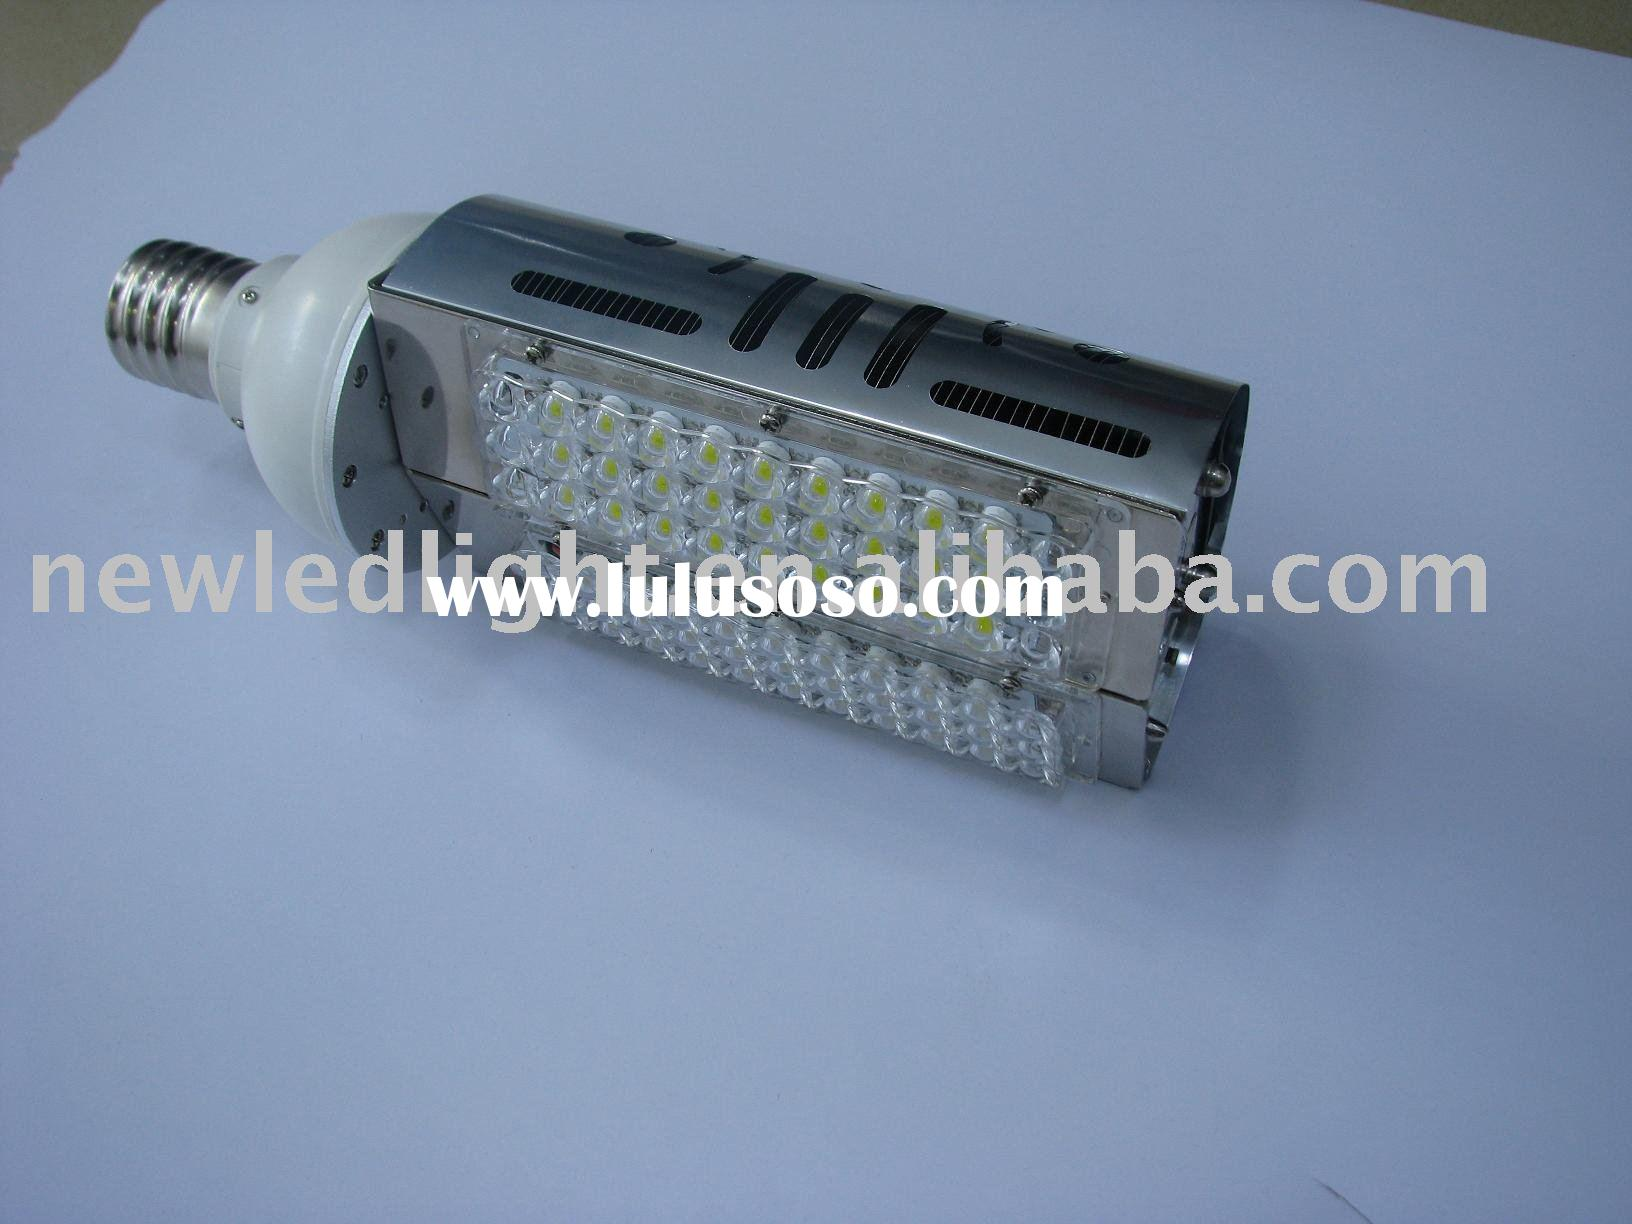 E40 LED street light retrofit LED street lamp E40 led pavement light 80W